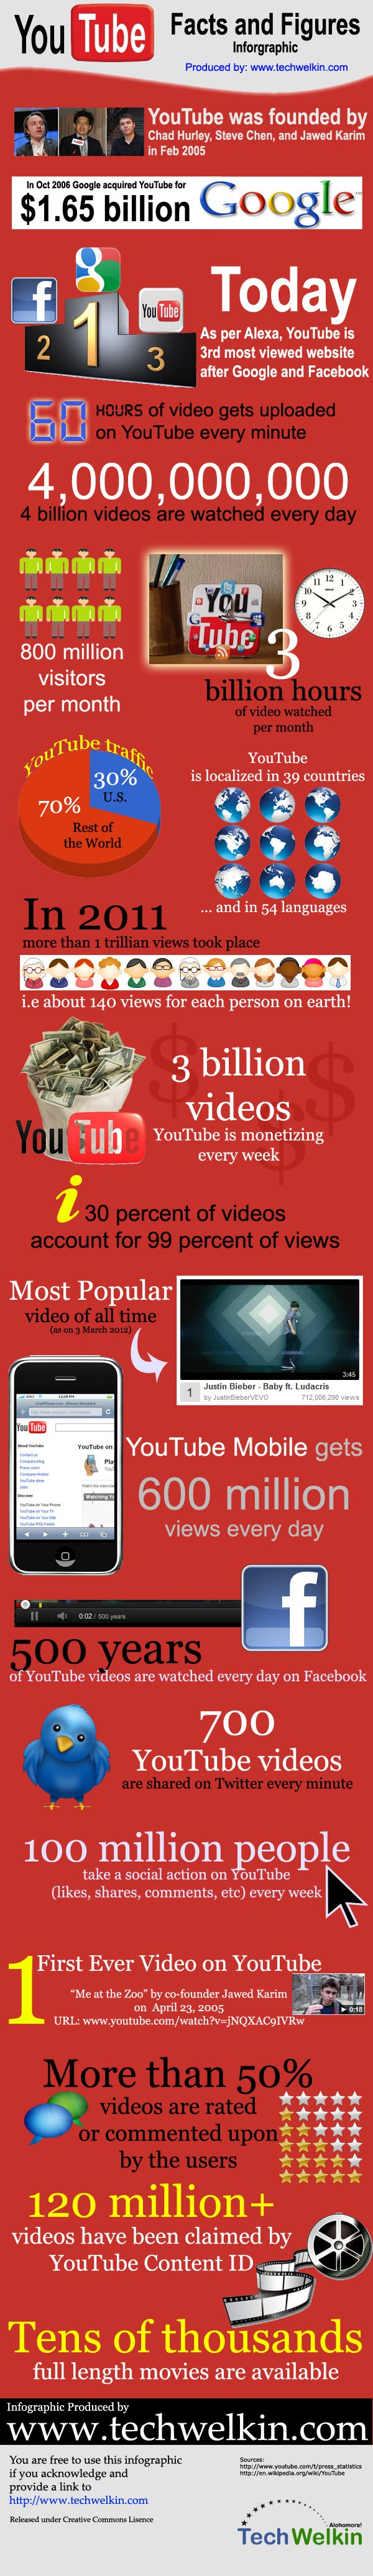 youtube-facts-figures